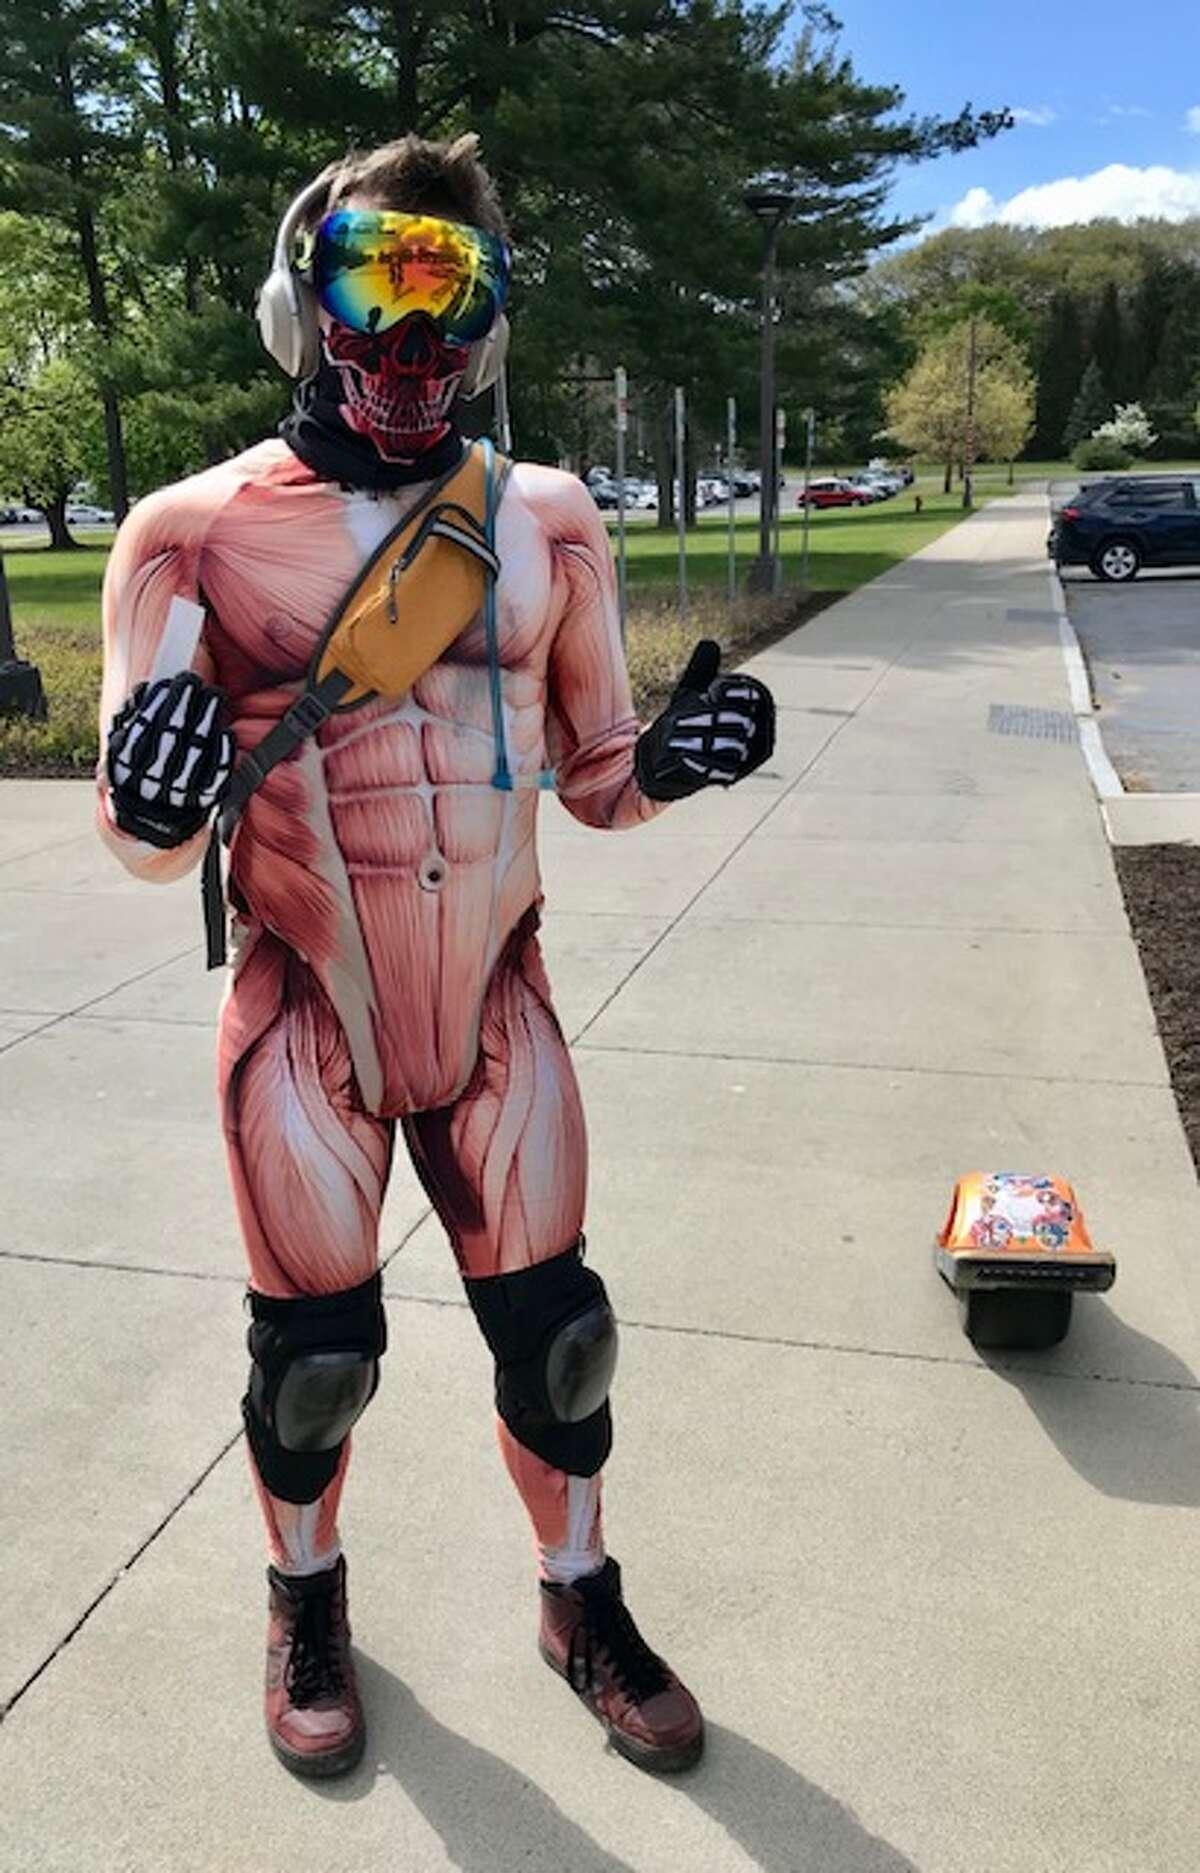 Kamil Zieba, 31, of Guilderland, said he loves making people smile as he zips past in his Spiderman-like moves after a terrible pandemic year.